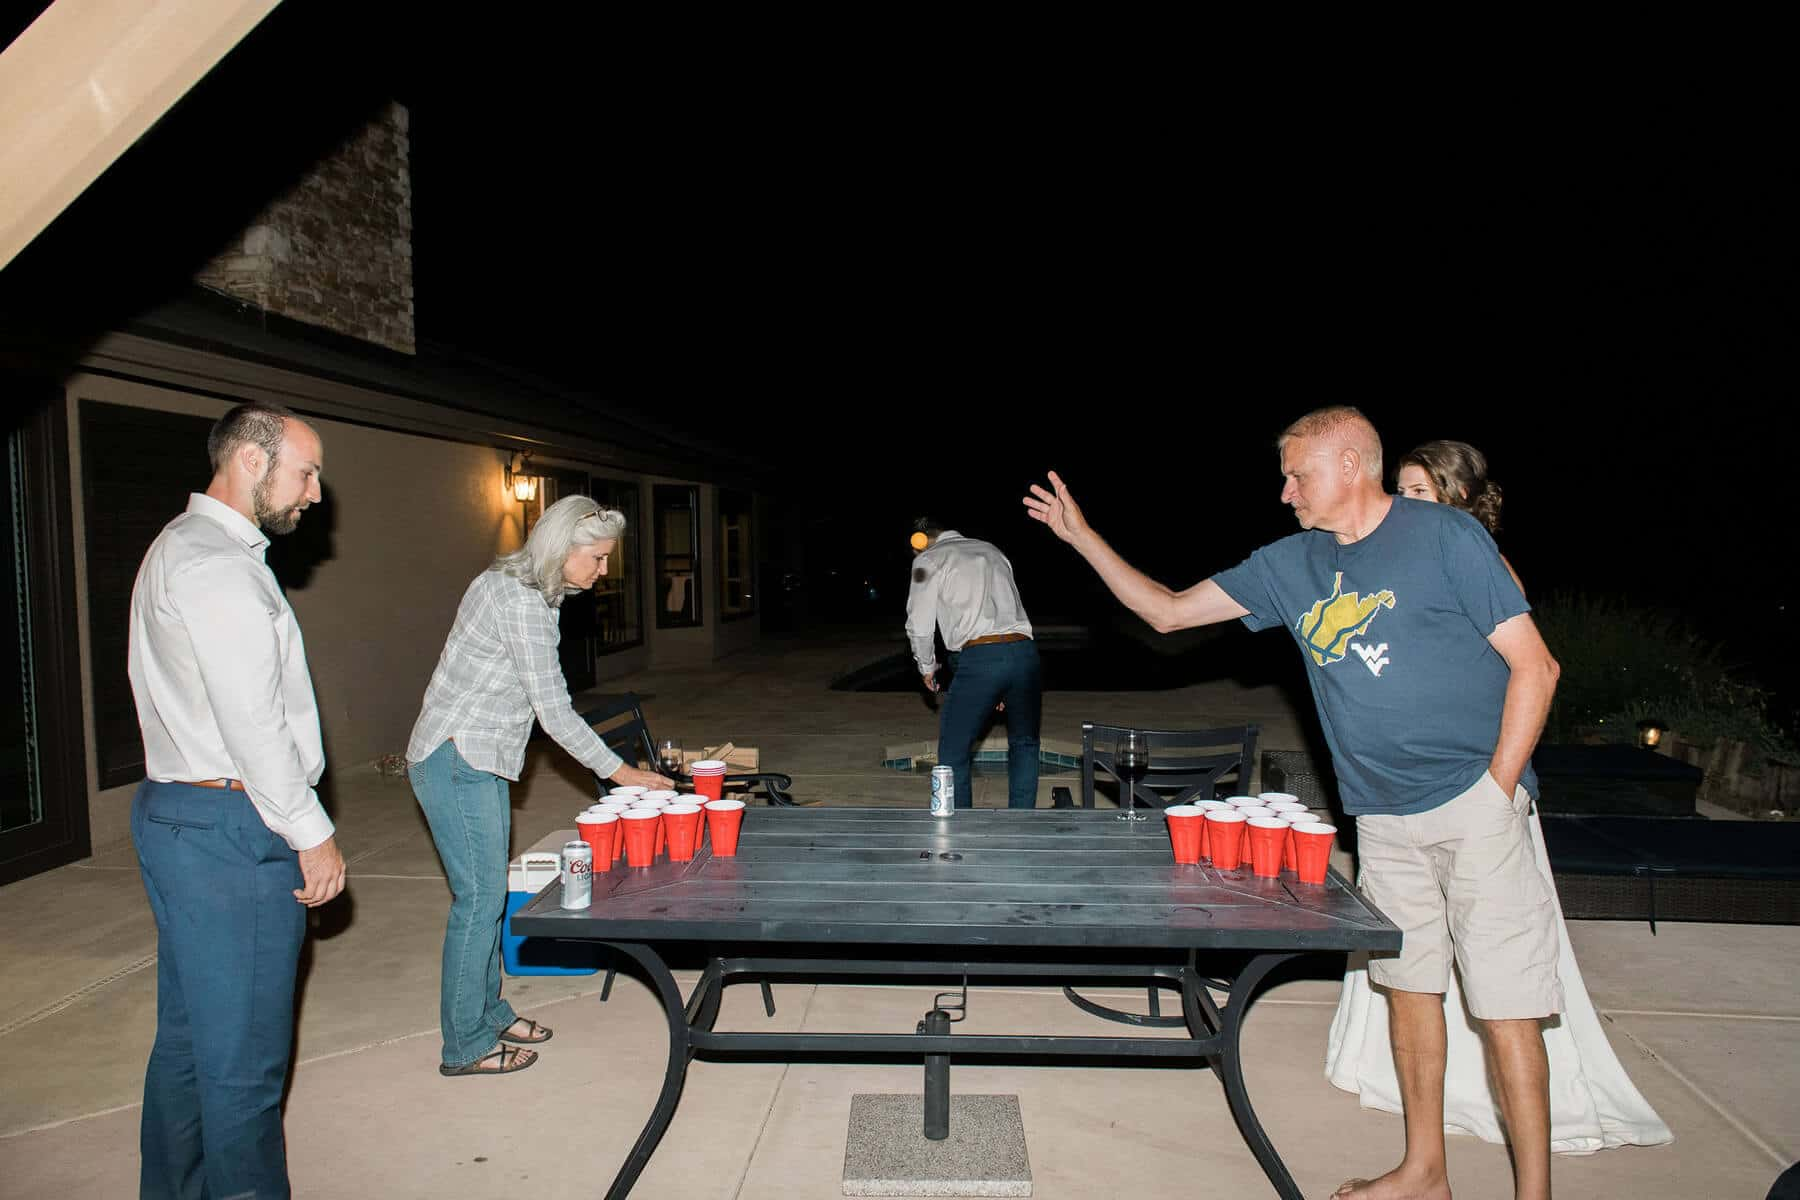 bride and groom and family play beer pong on patio of private residence during intimate wedding reception oakhurst